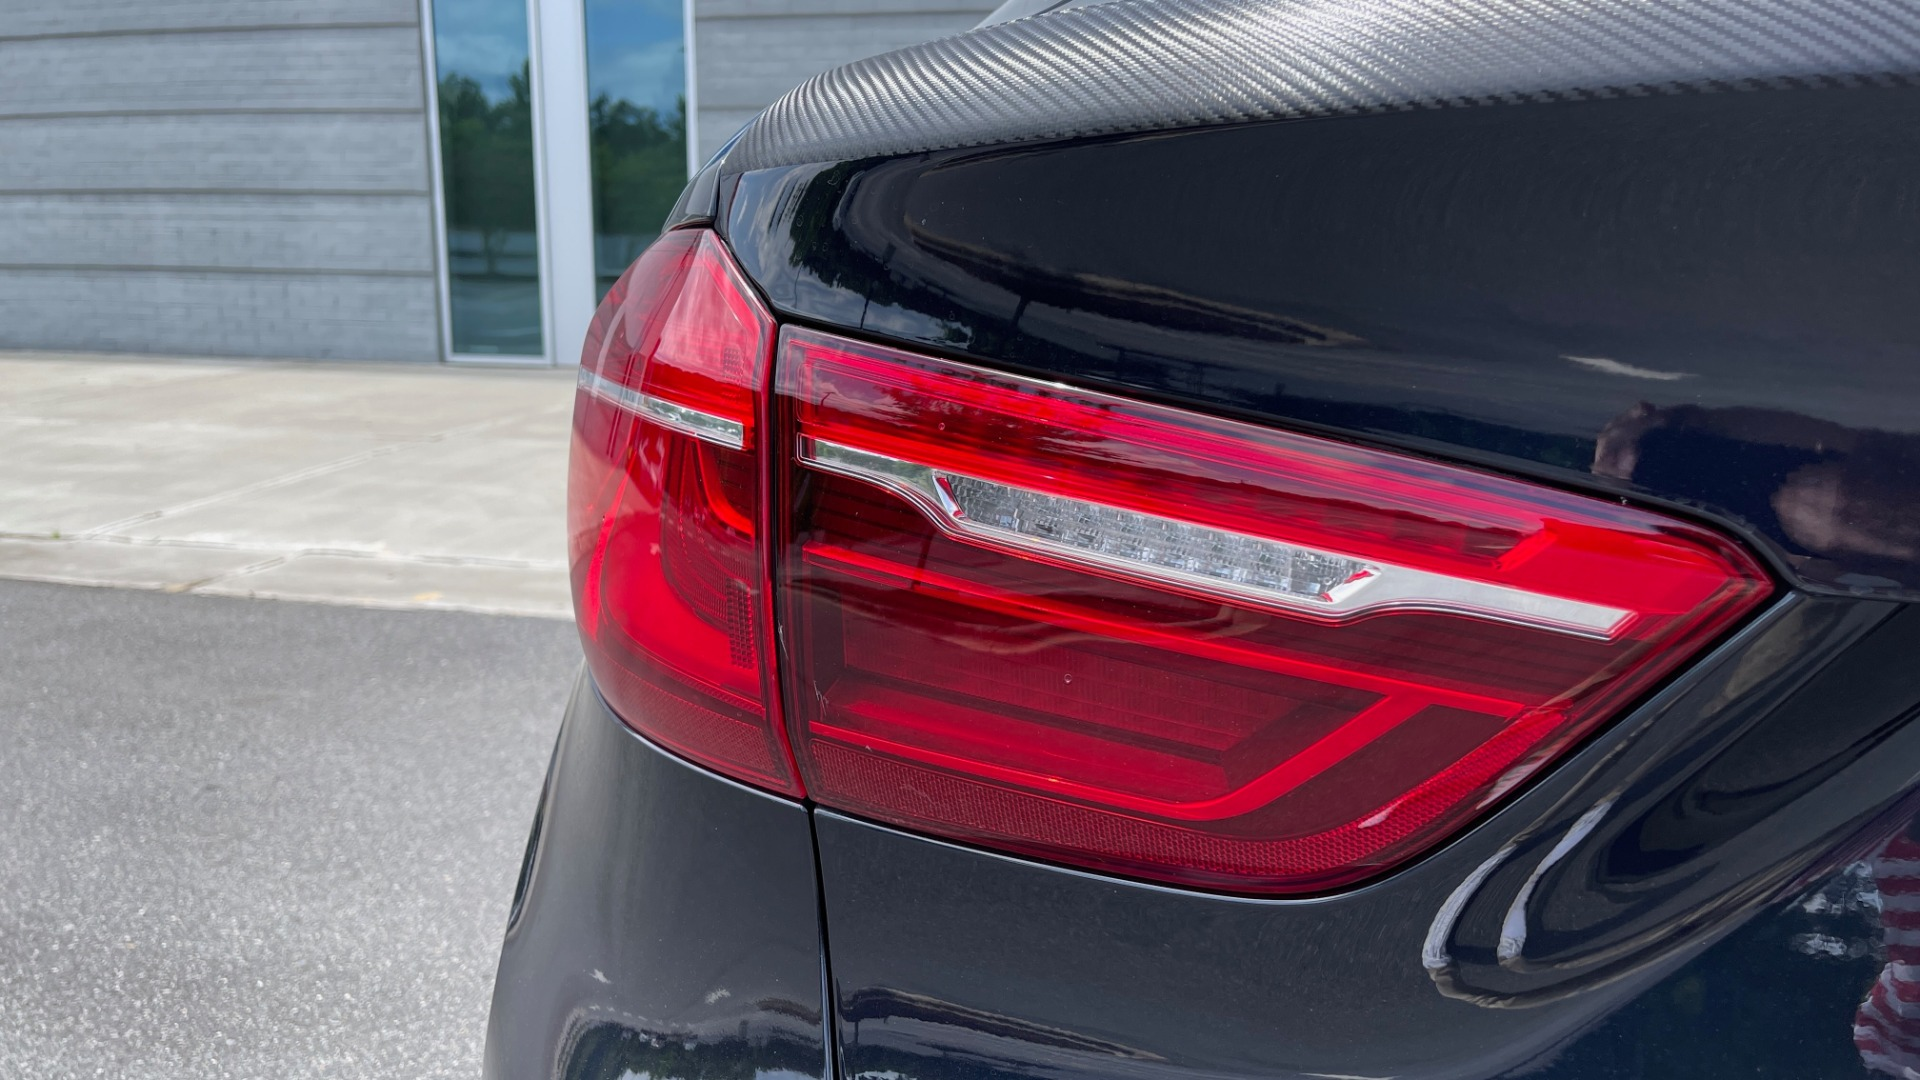 Used 2018 BMW X6 XDRIVE35I M-SPORT / DRVR ASST / PRK ASST / H/K SND / APPLE / WIRELESS CHARG for sale $51,995 at Formula Imports in Charlotte NC 28227 25